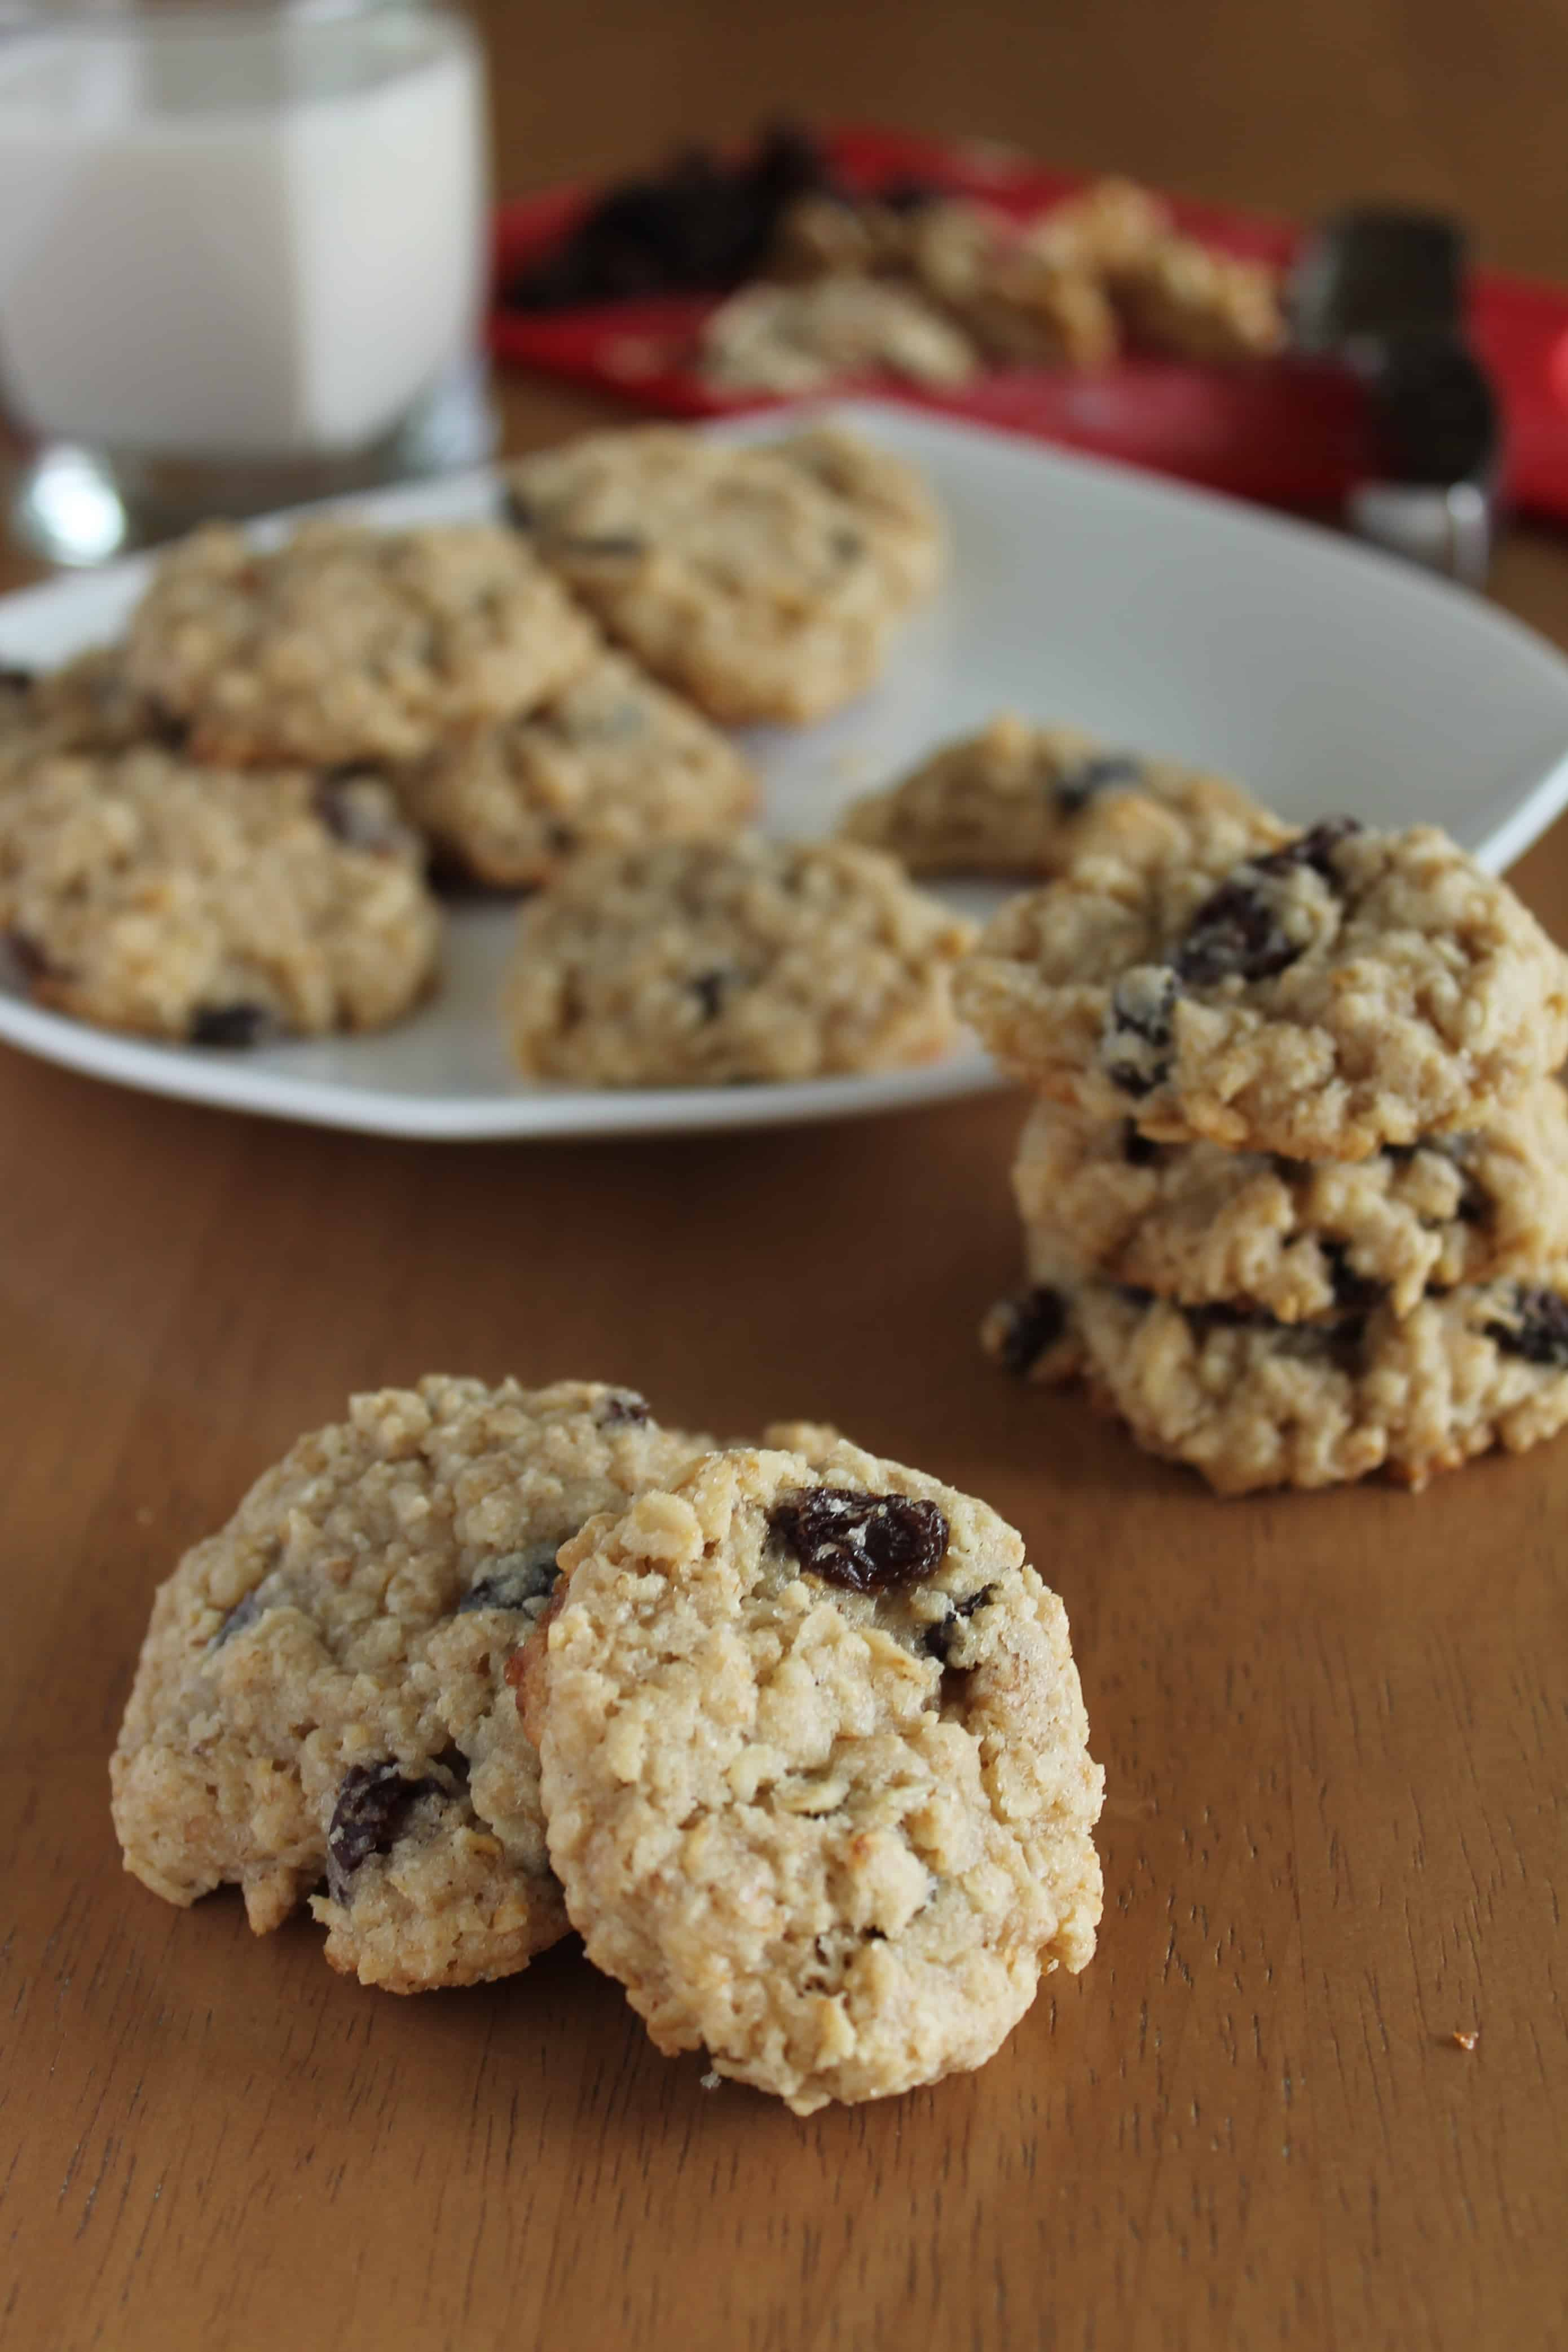 vegan oatmeal raisin cookies with wood backdrop and white plate in background